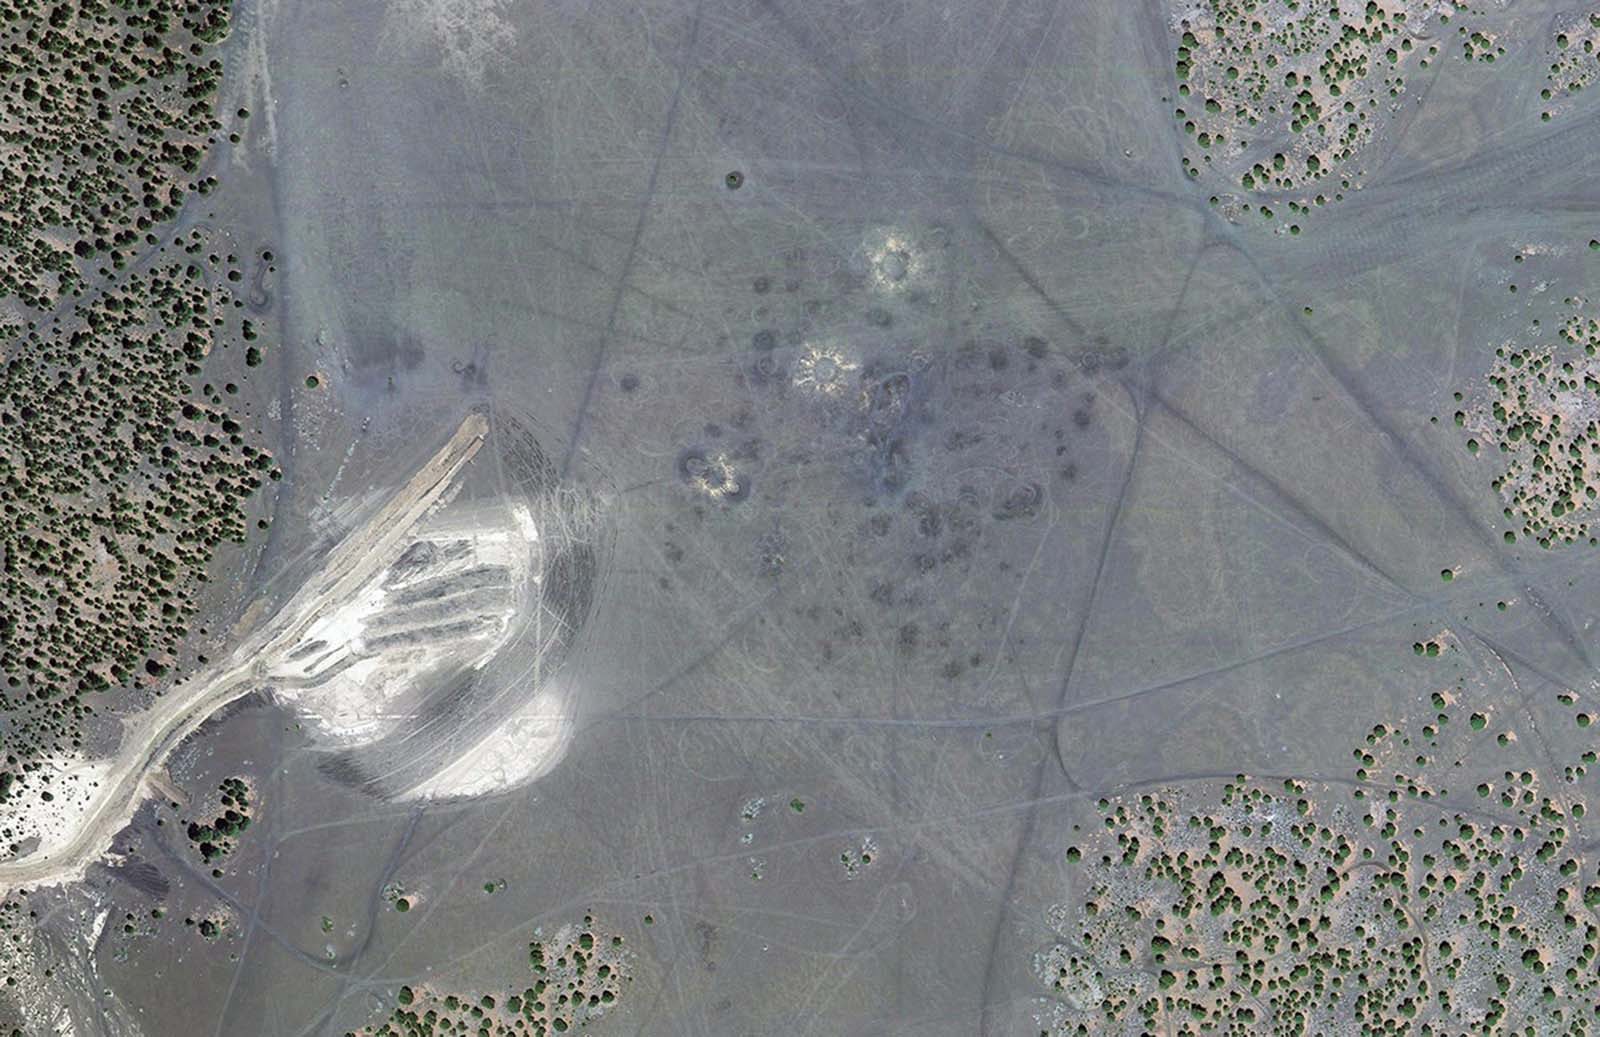 A modern satellite view, made in 2011, of Cinder Lake Crater Field #2, north of Flagstaff, Arizona, decades after its use as a lunar training location.